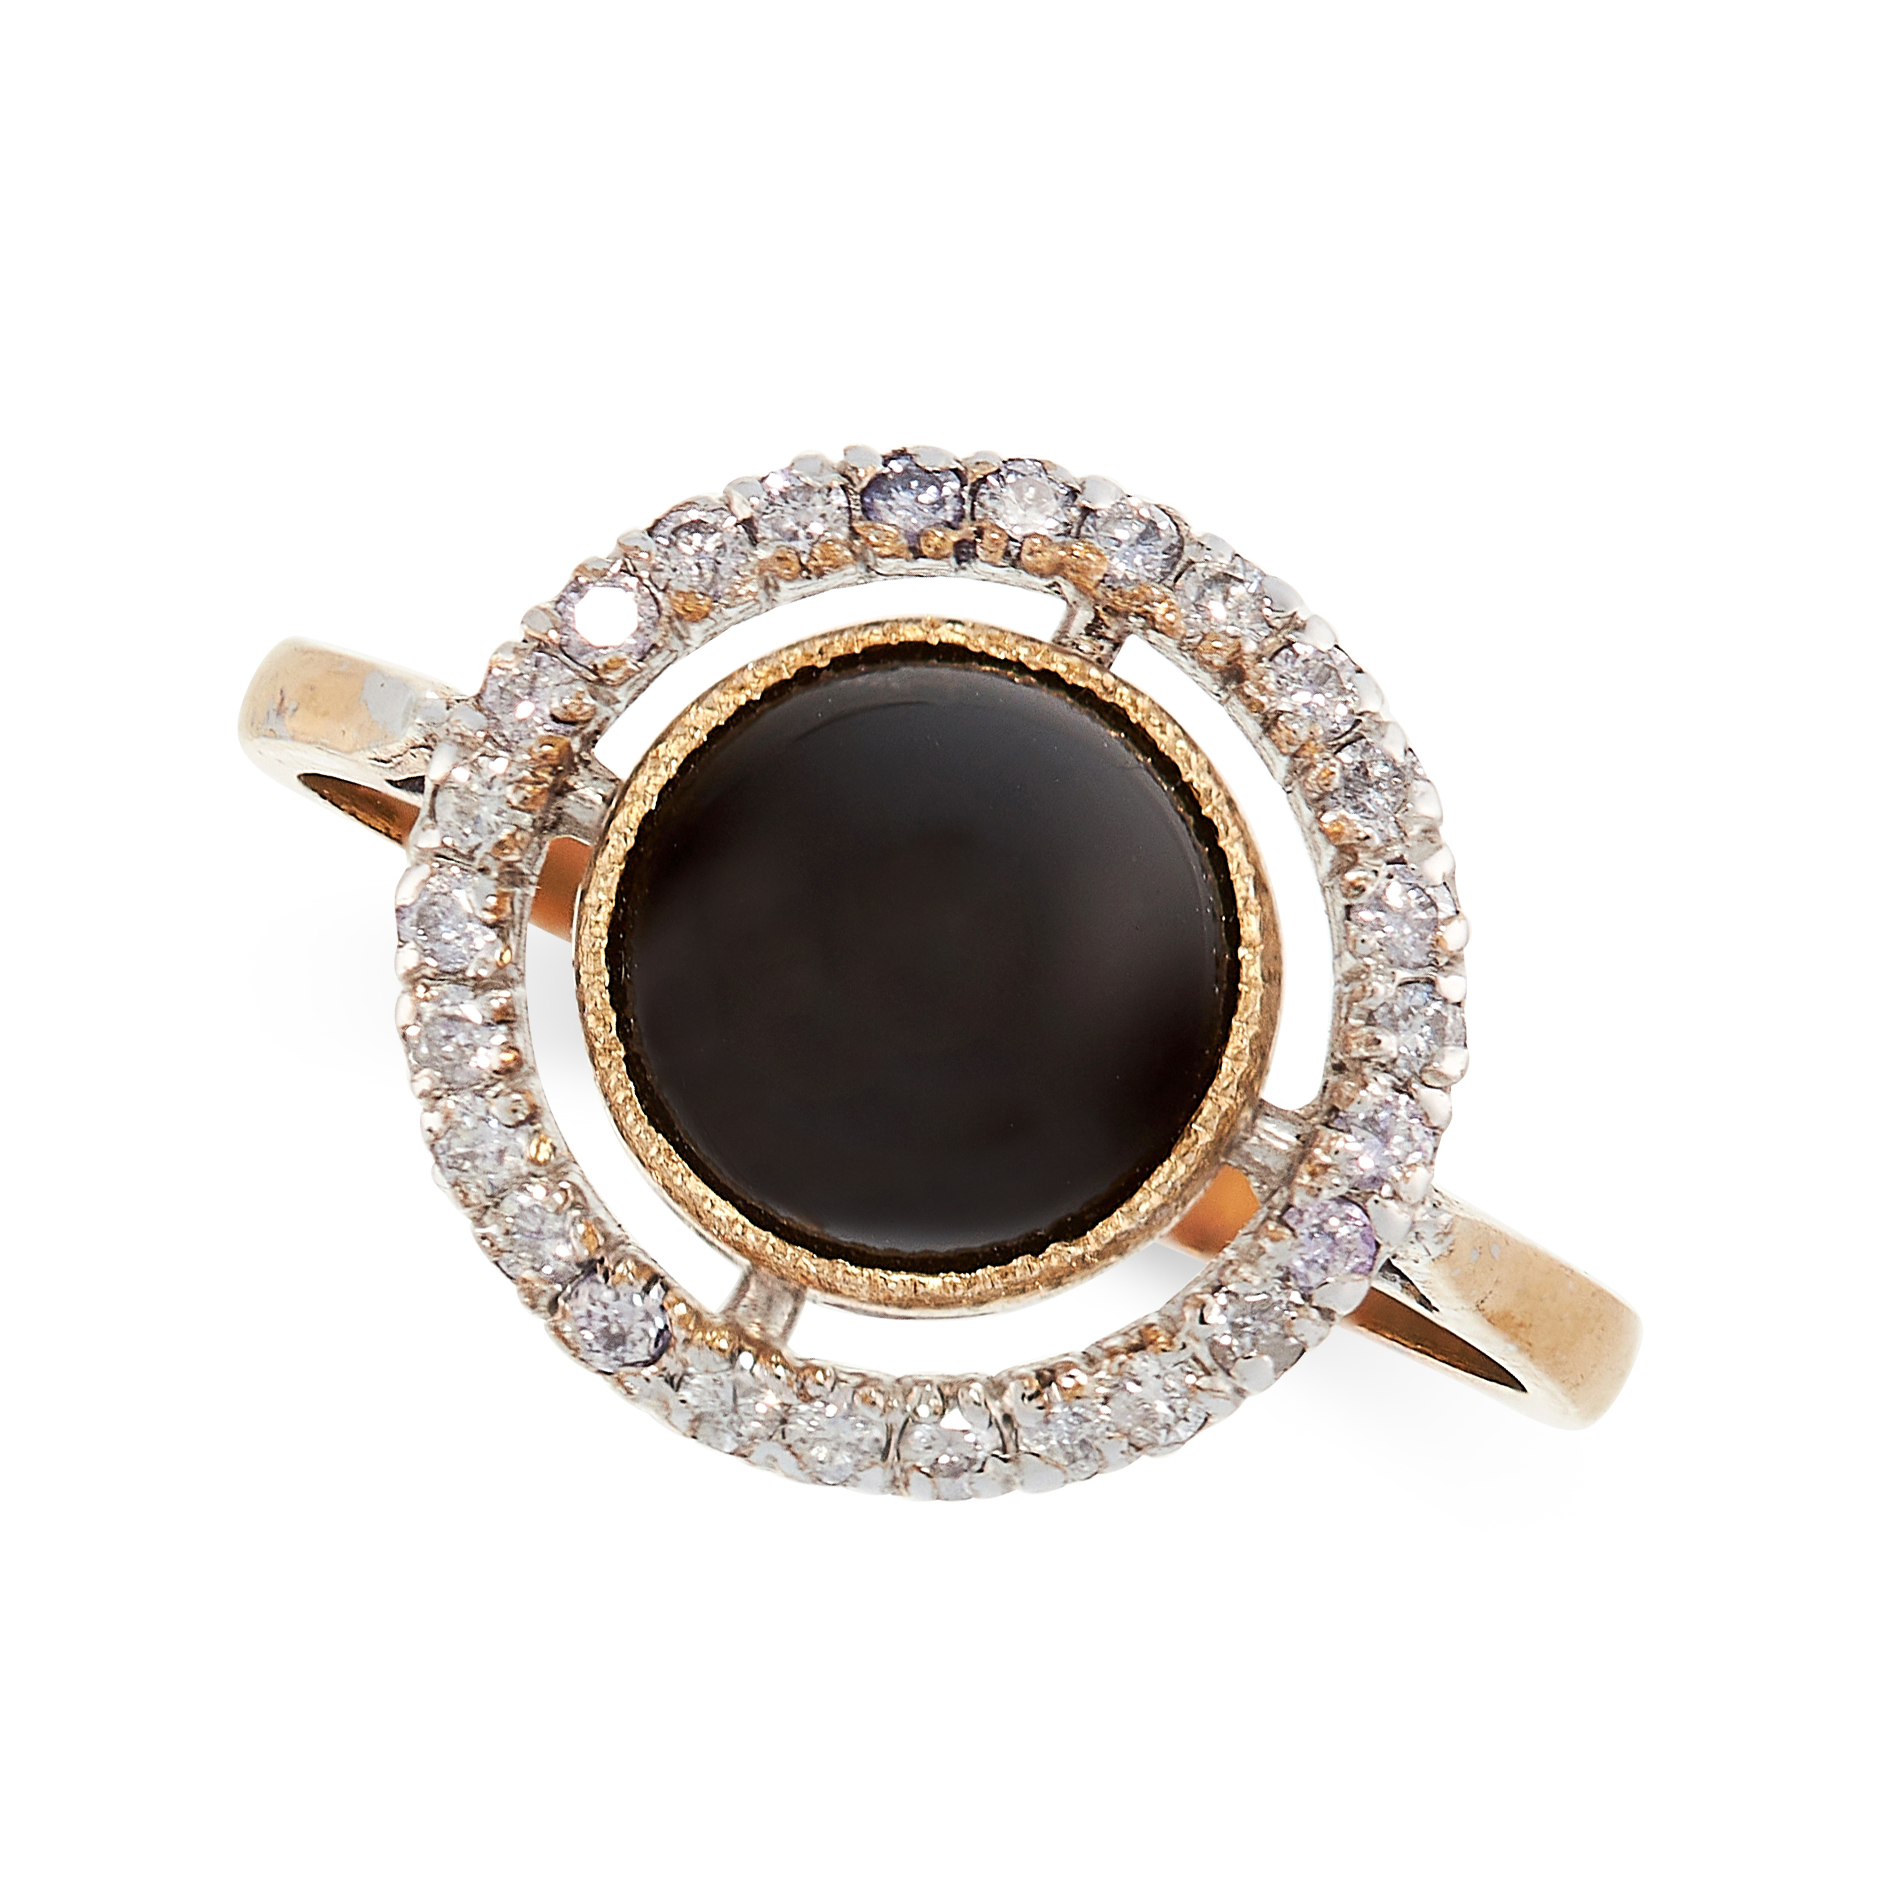 ONYX AND DIAMOND RING in yellow gold, comprising of a central polished onyx cabochon in a border